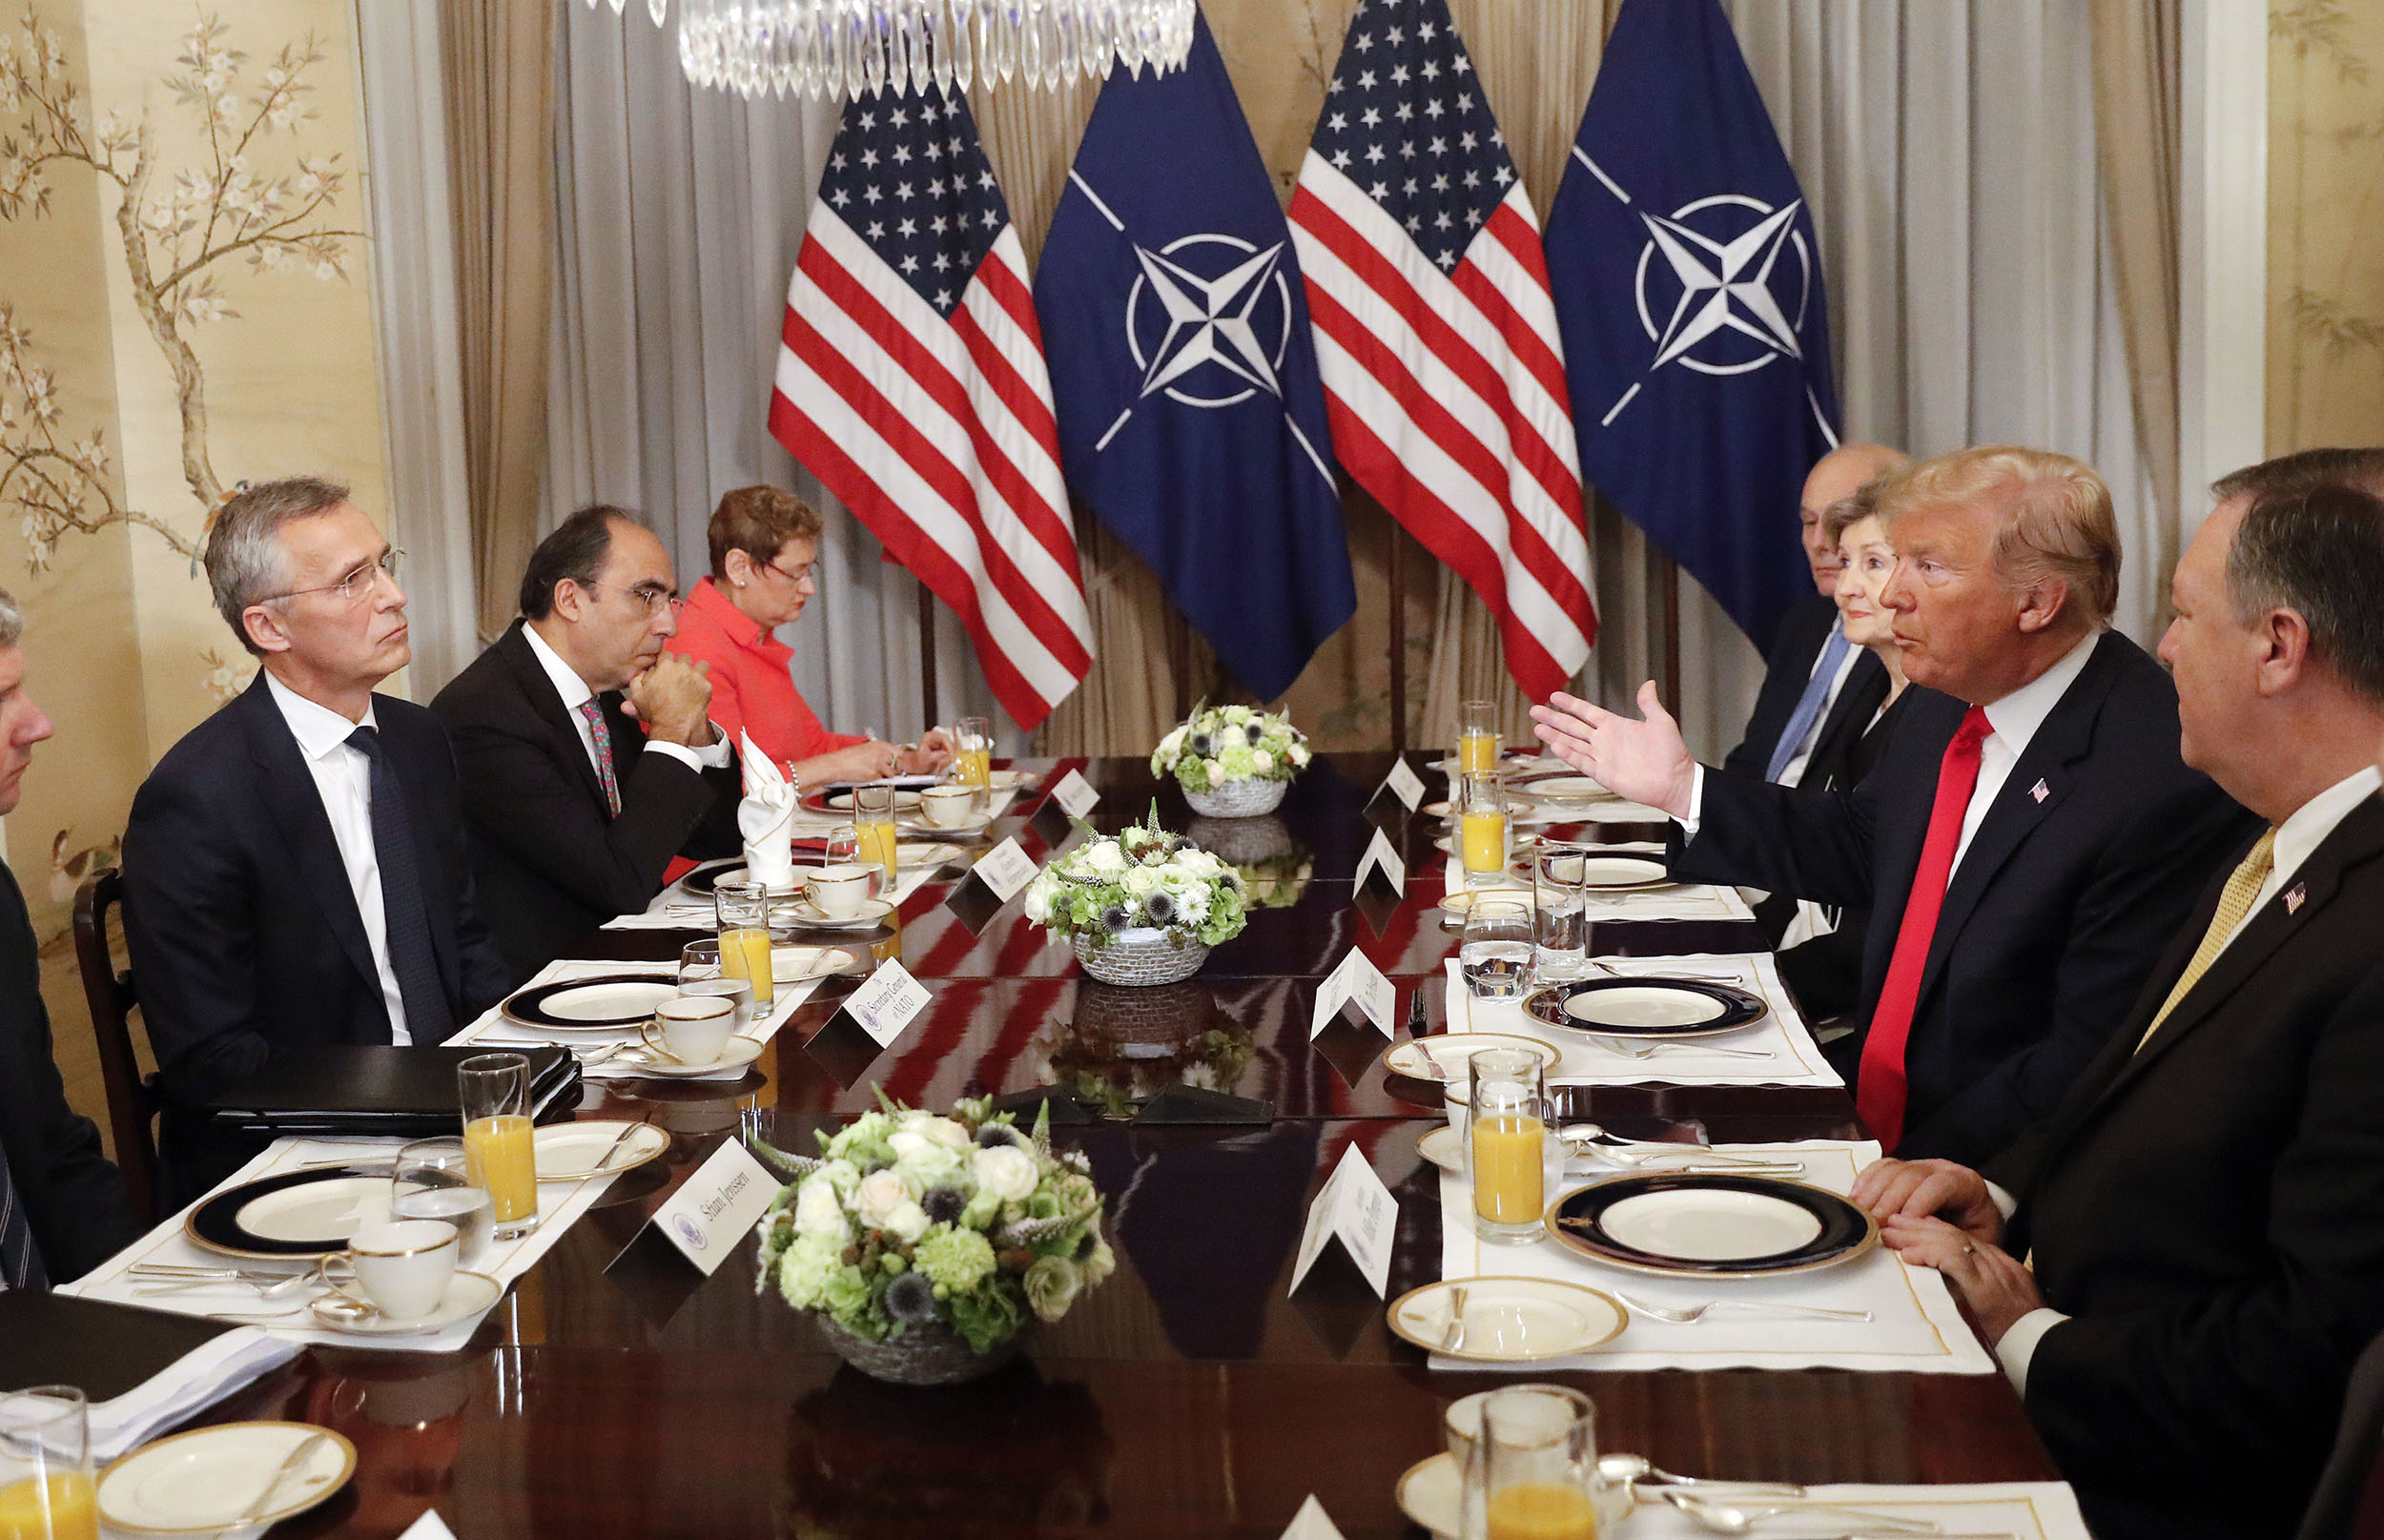 Trump-blasts-allies,-says-Germany-is-'a-captive-of-Russia'-in-testy-start-to-NATO-summit